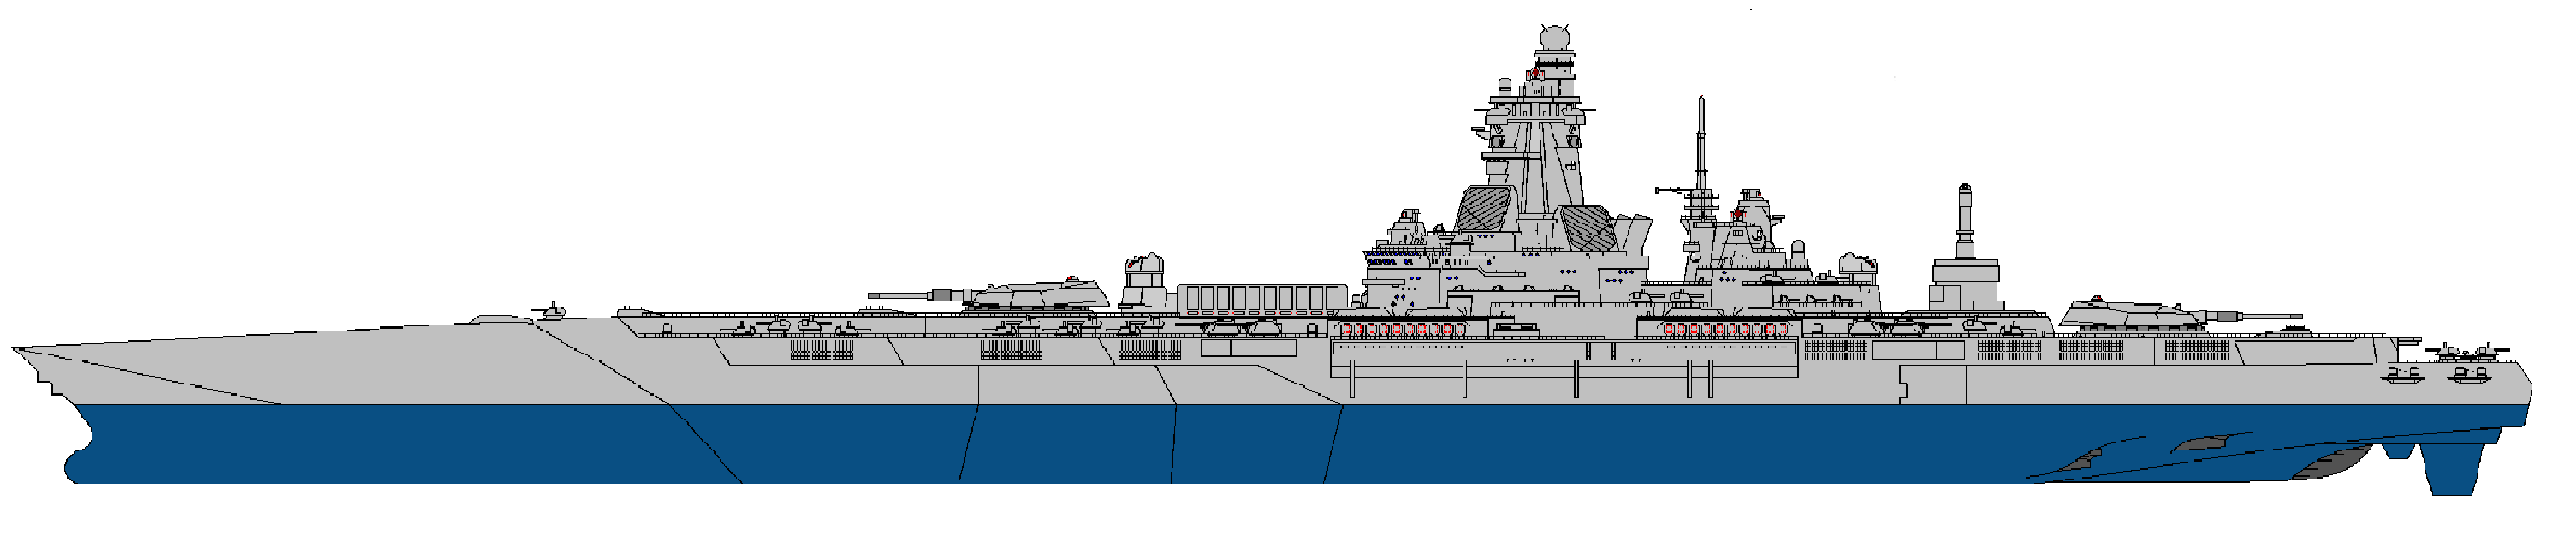 Battleship PNG HD - 126130